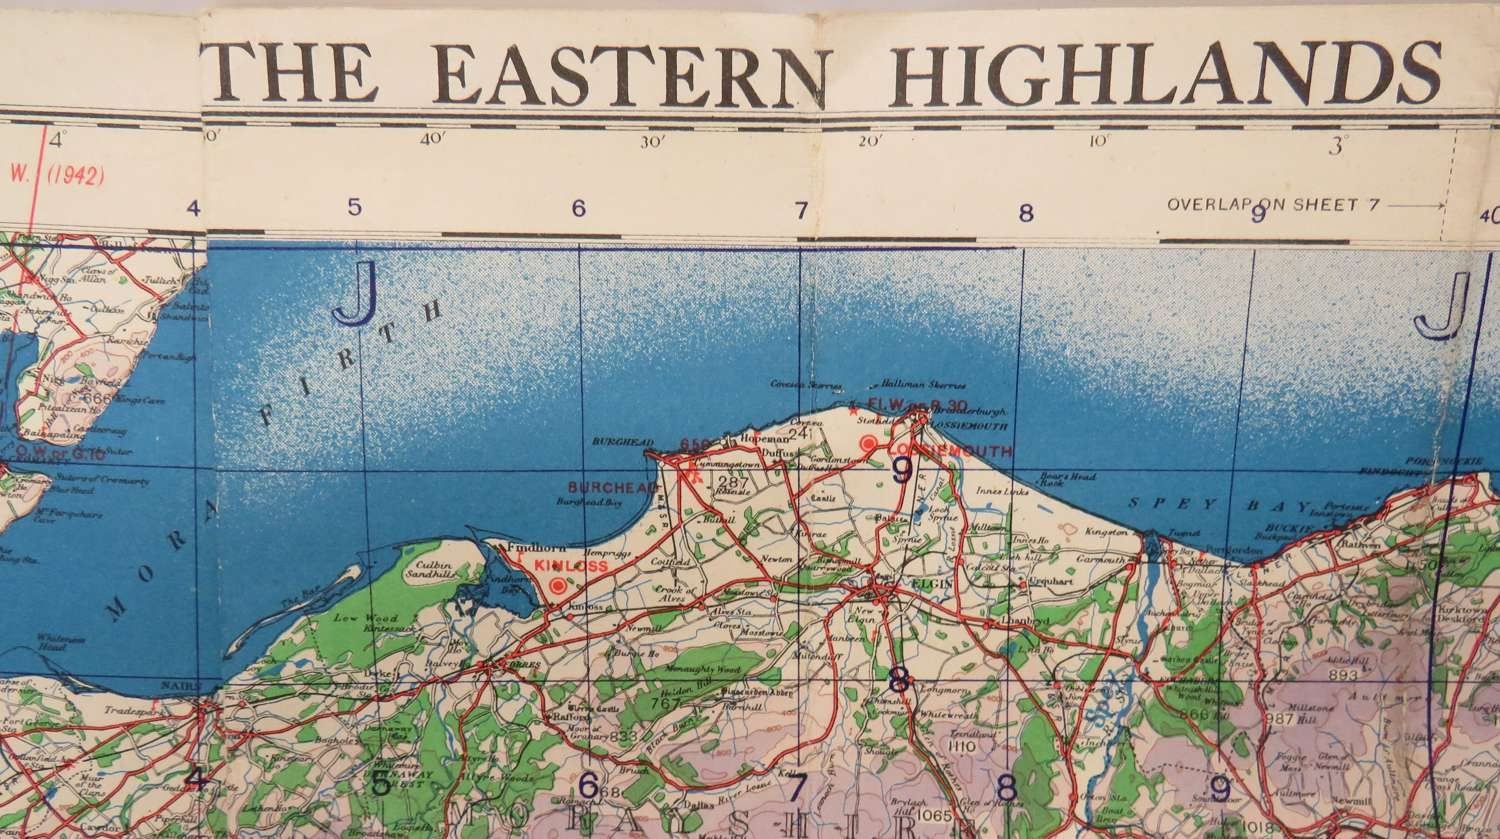 WW2 British Military / Air Map of The Eastern Highlands